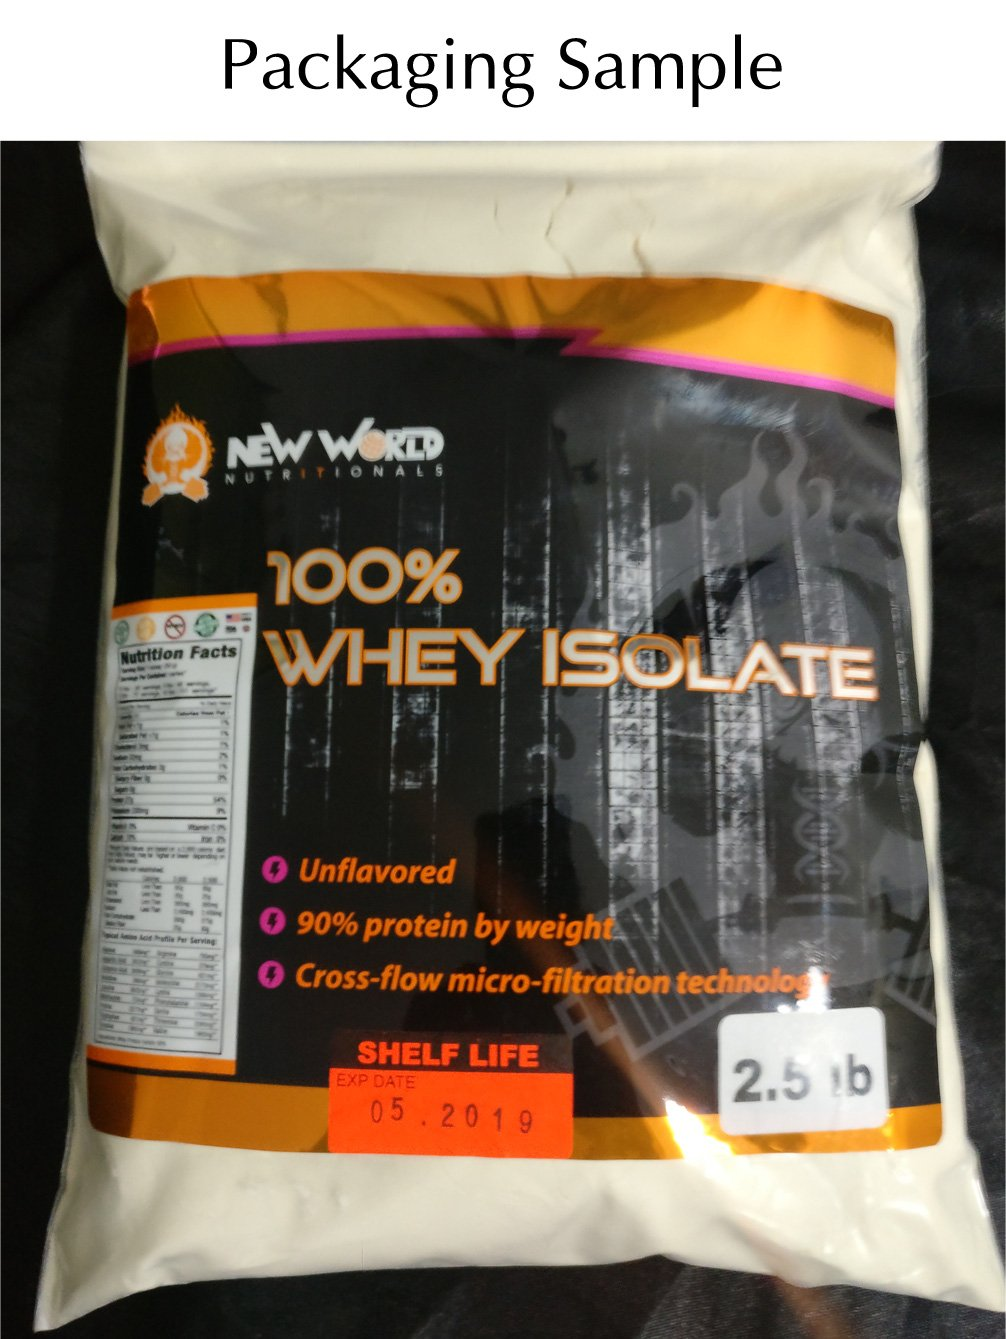 New World Nutritionals Low-Carb 100% Natural Whey Isolate, Supports Lean Muscle Development, Factory Direct,Outrageously Delicious (Unflavored, 10 Pound) by New World Nutritionals (Image #4)